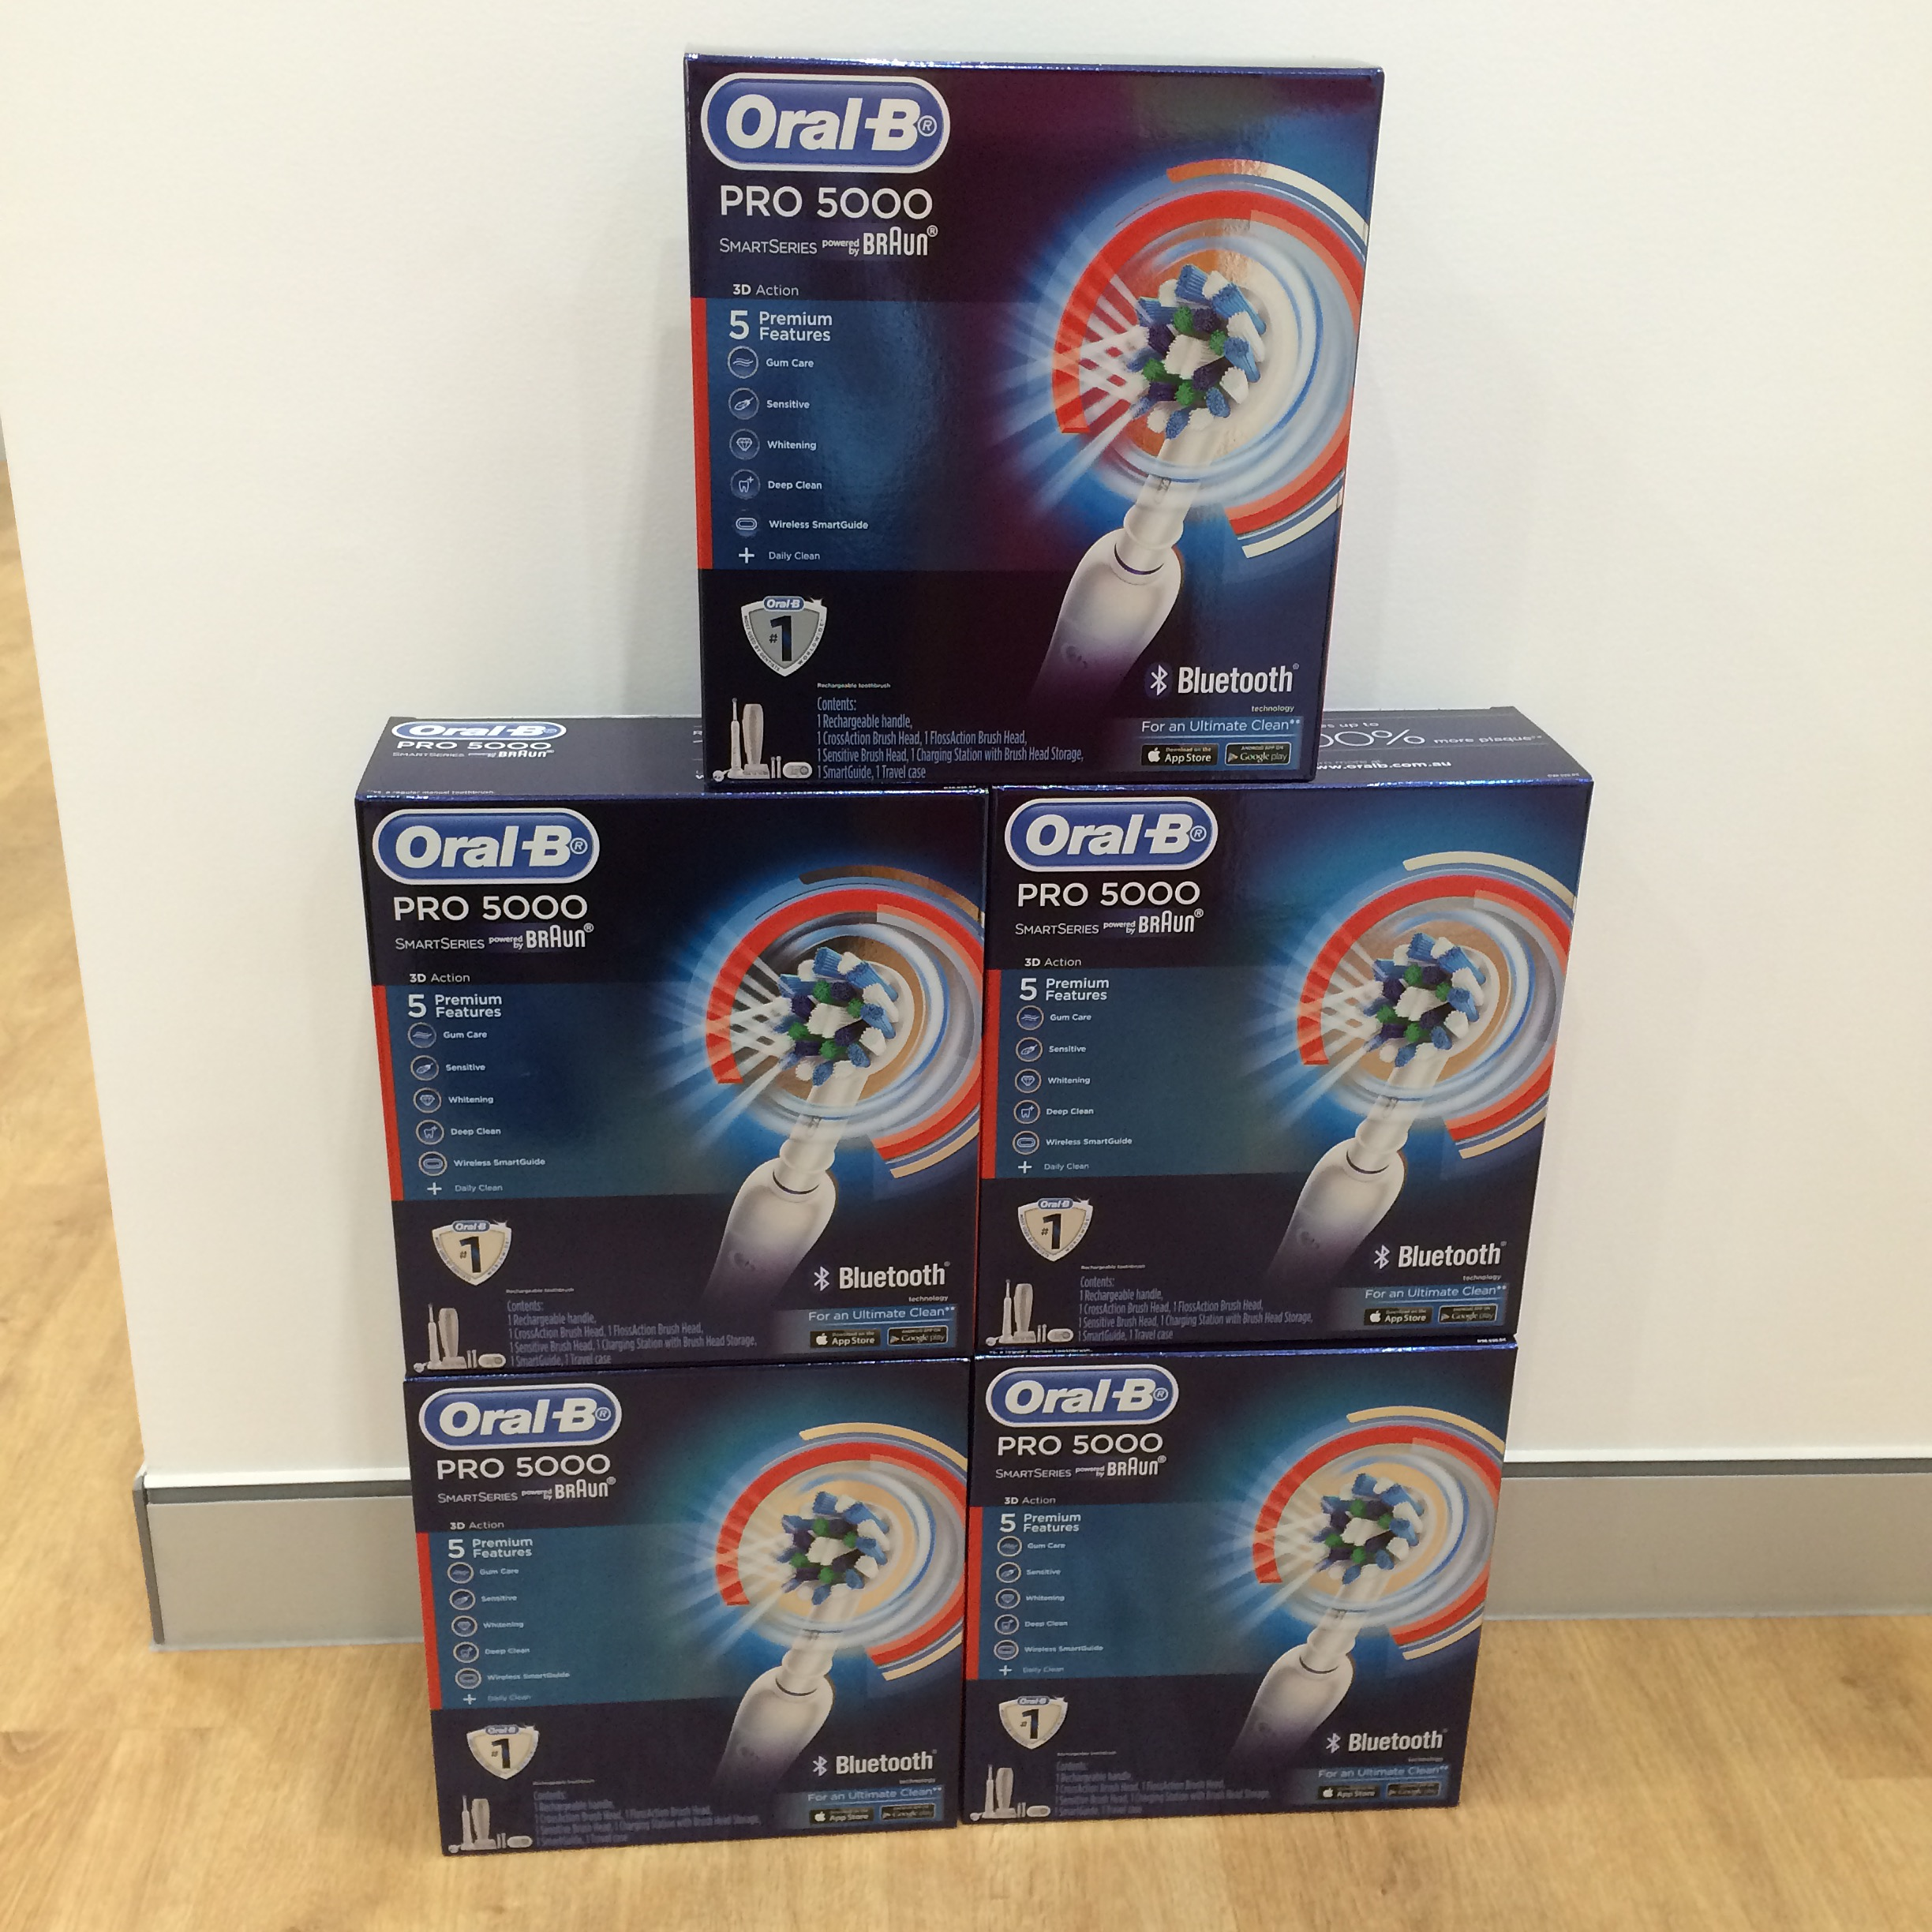 Boxes of new electric toothbrushes